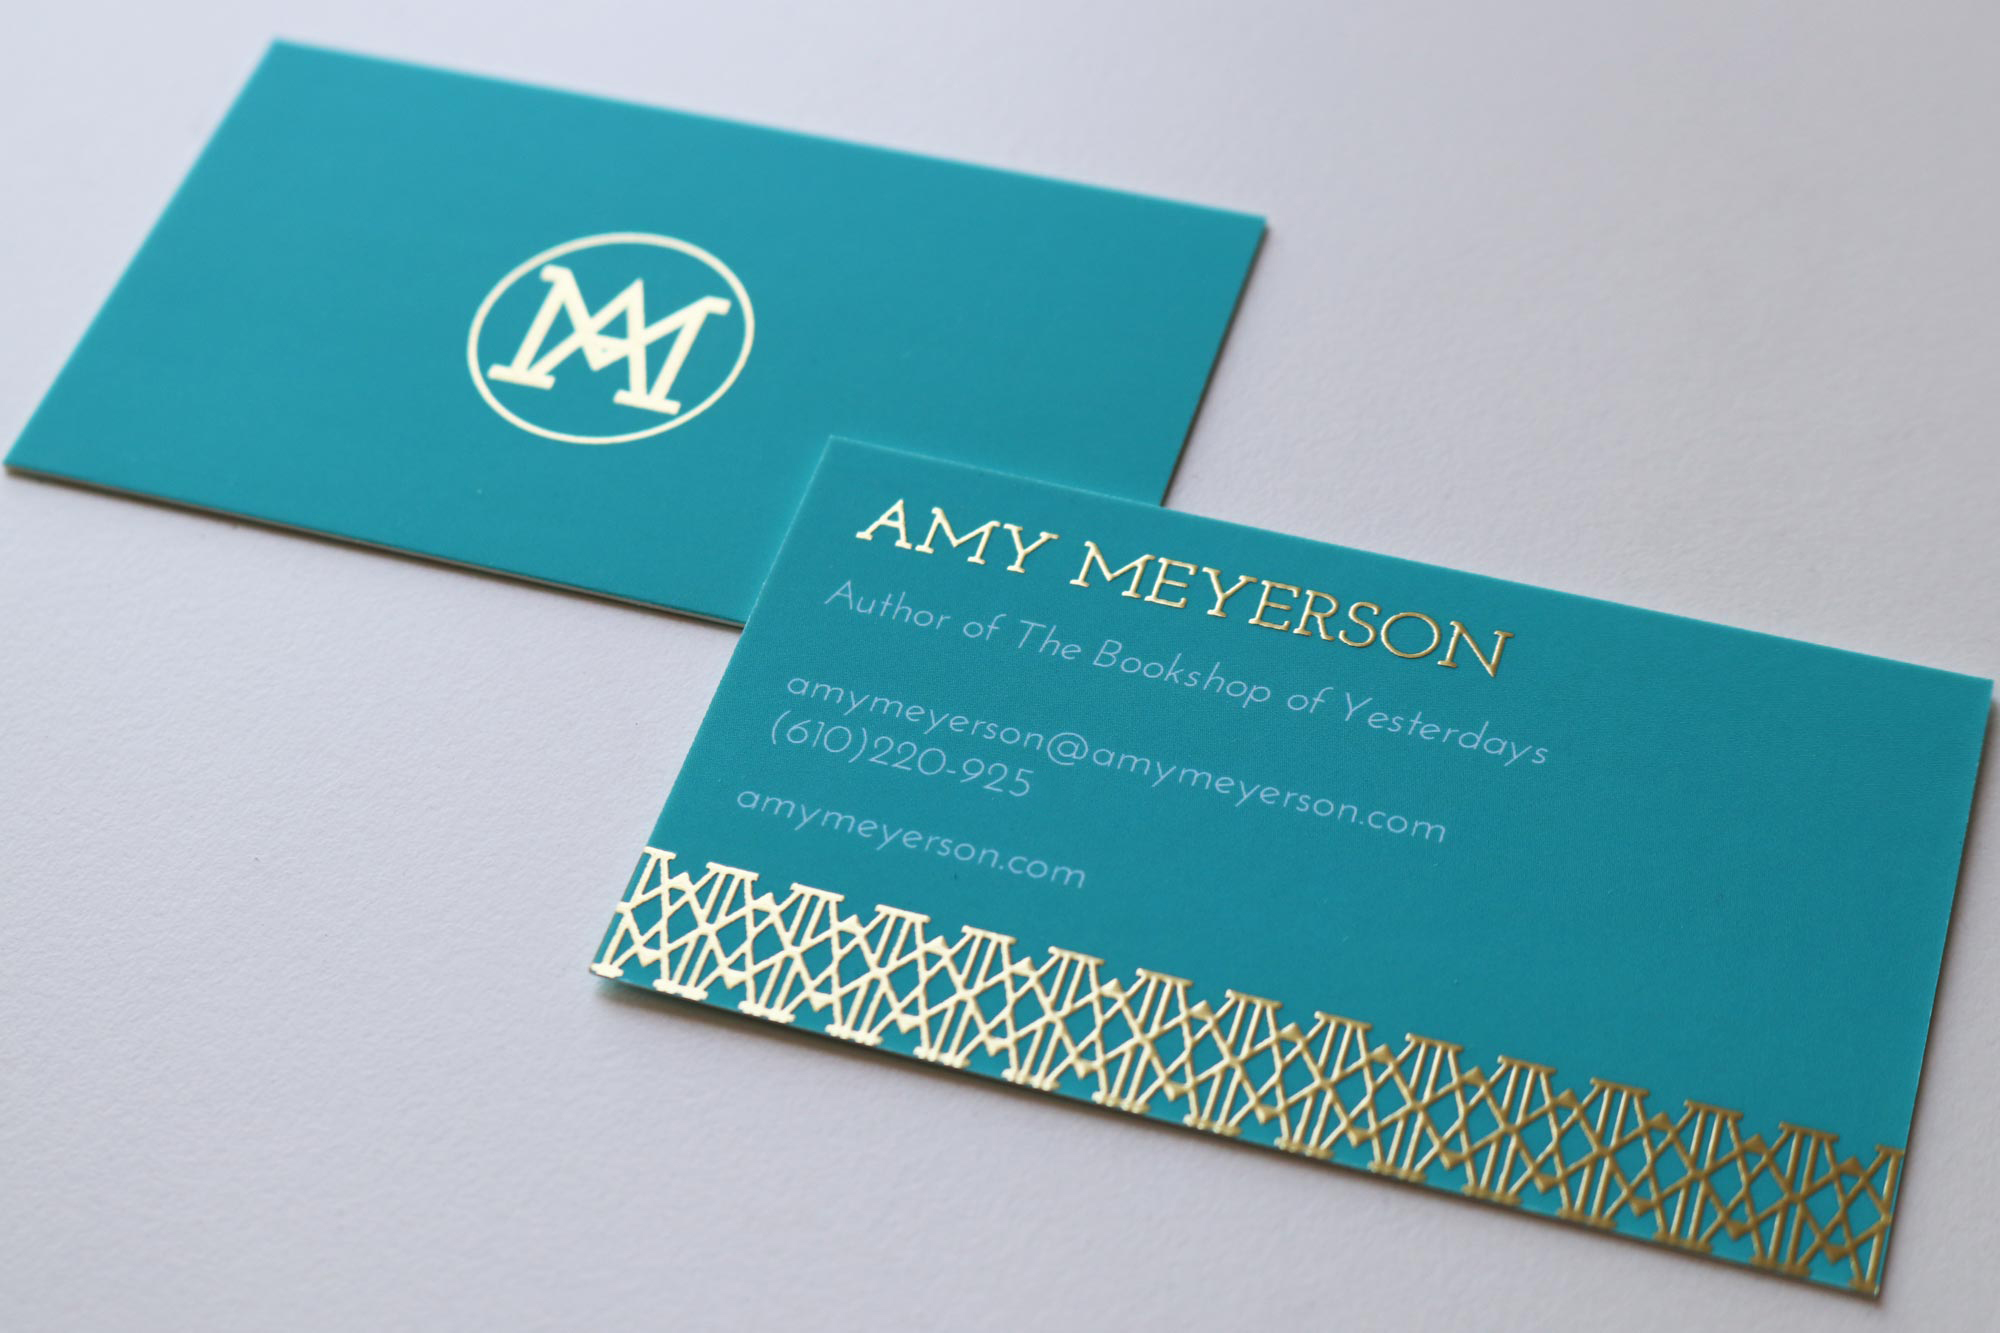 Raven crow studio amy meyerson amy meyerson reheart Image collections